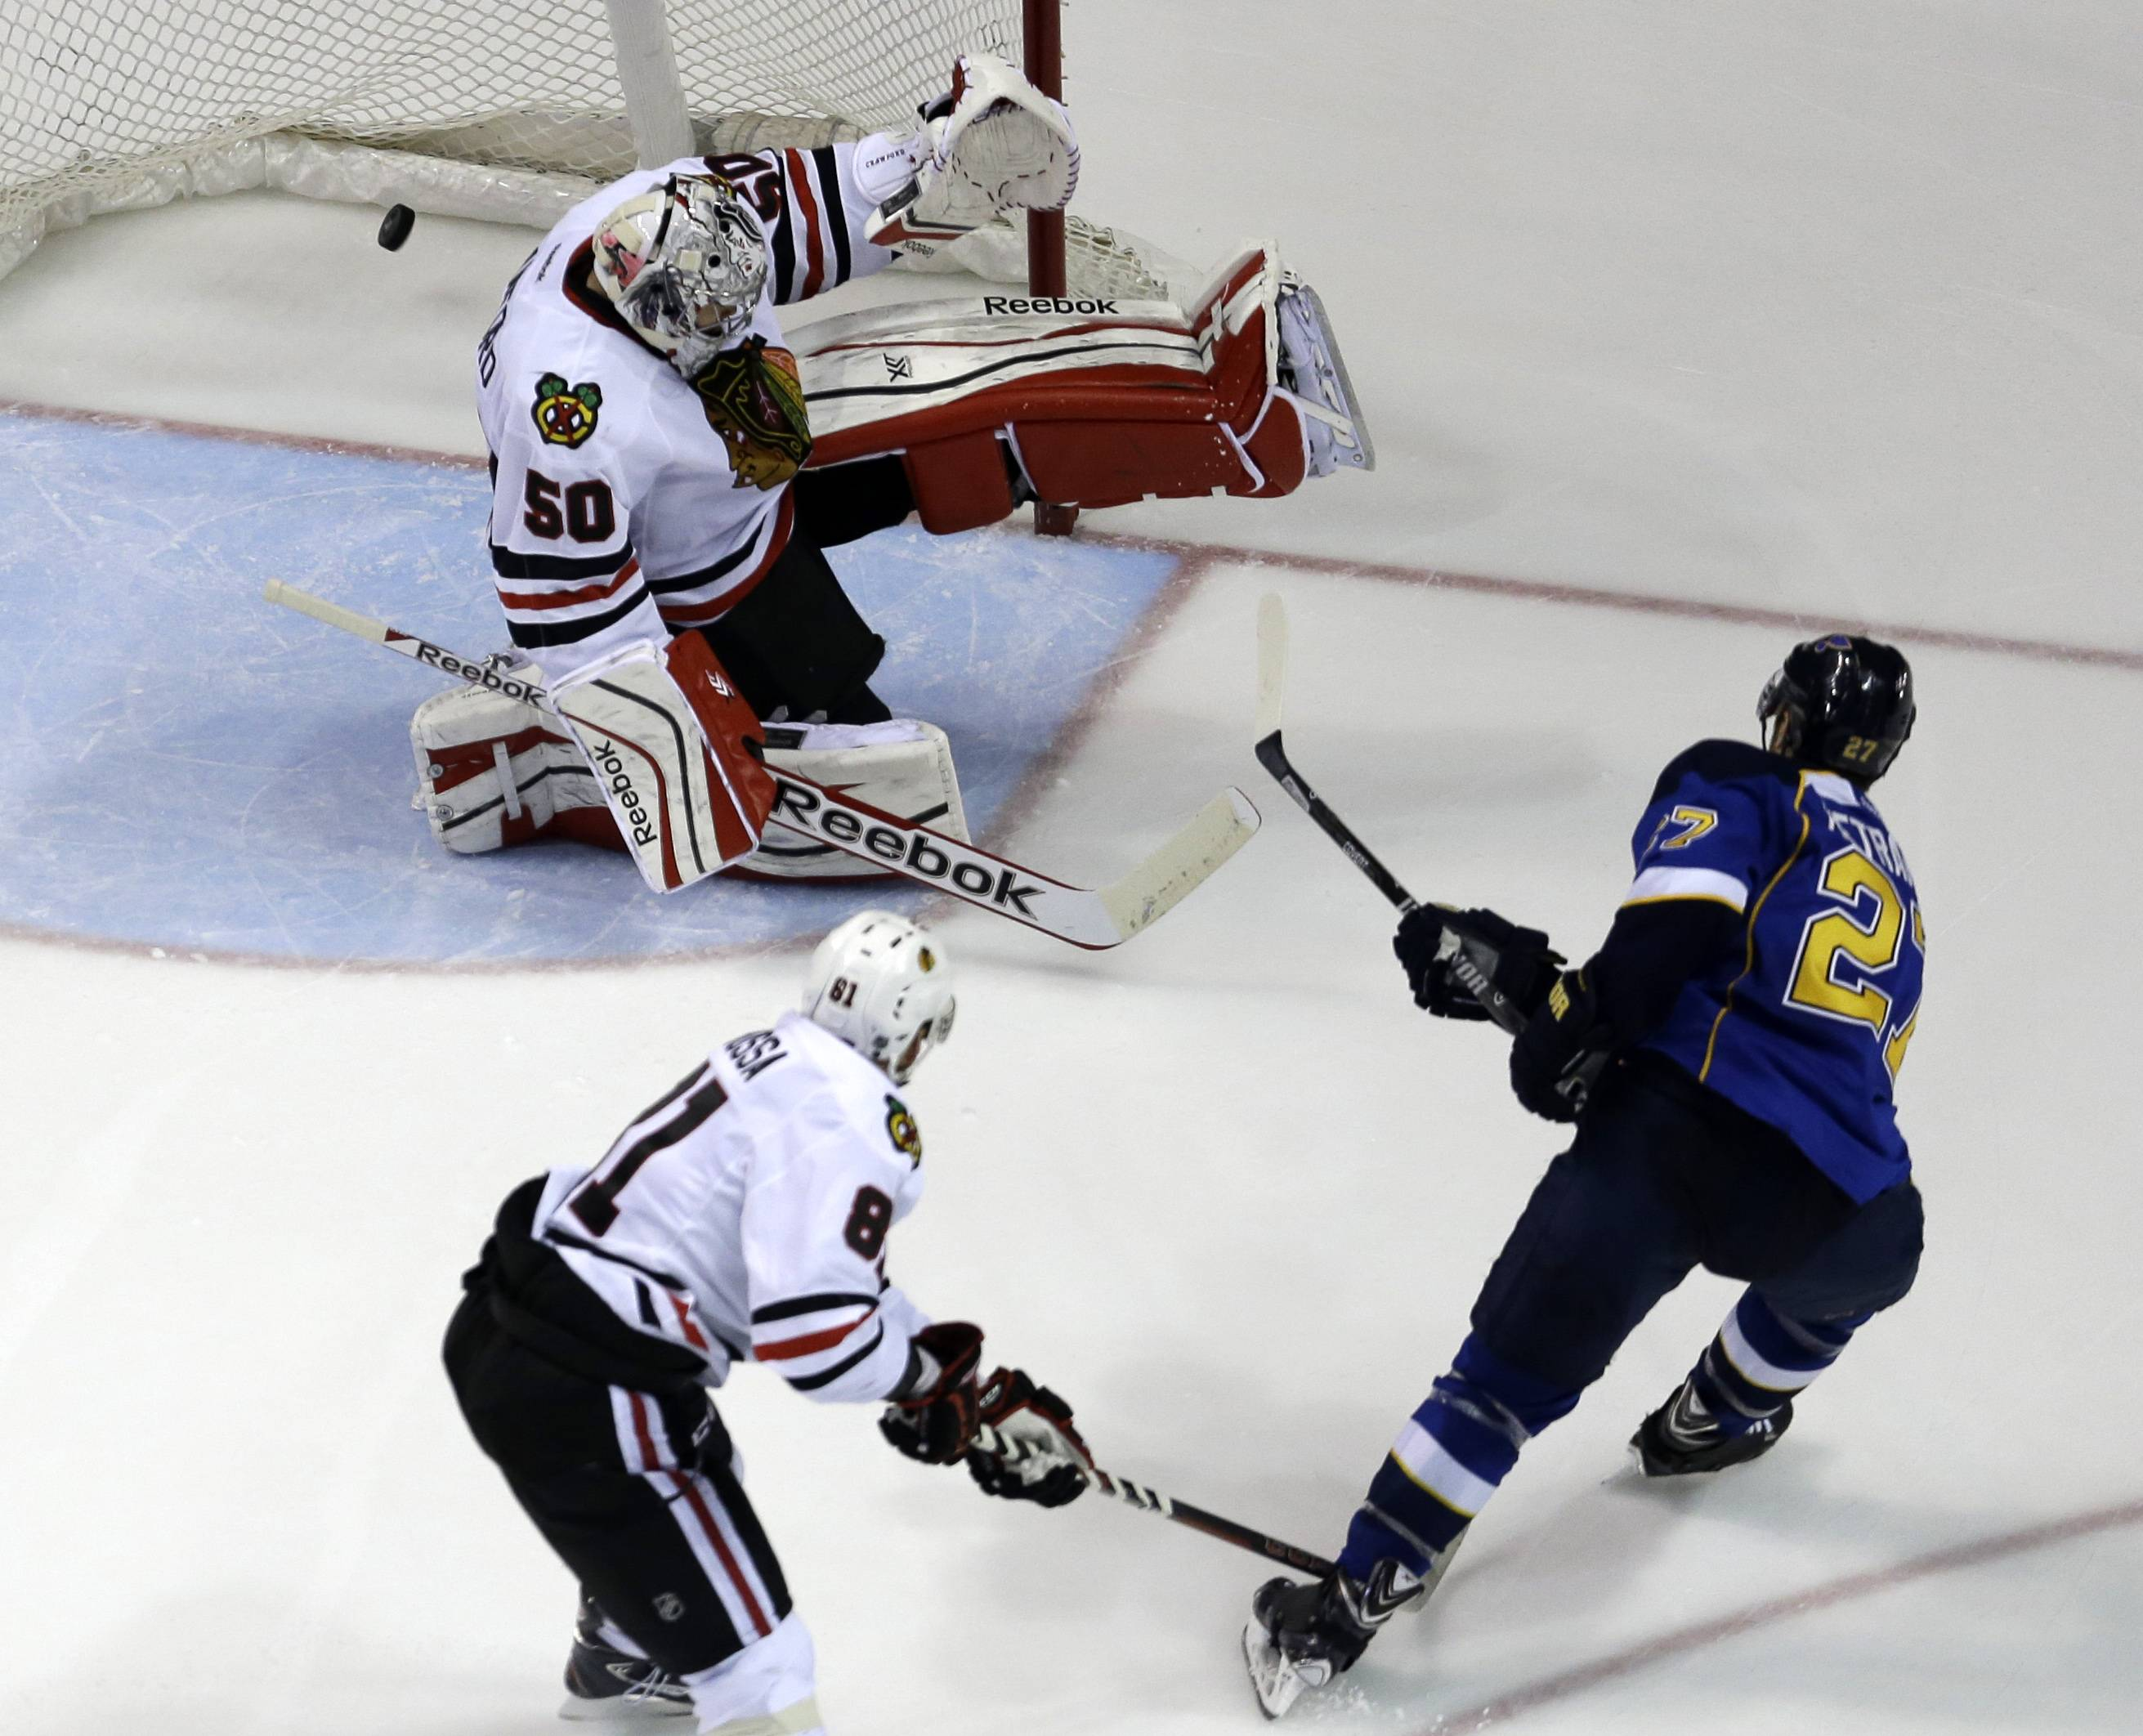 St. Louis Blues' Alex Pietrangelo, right, scores past Chicago Blackhawks goalie Corey Crawford (50) as Blackhawks' Marian Hossa, of Slovakia, watches during the third period.